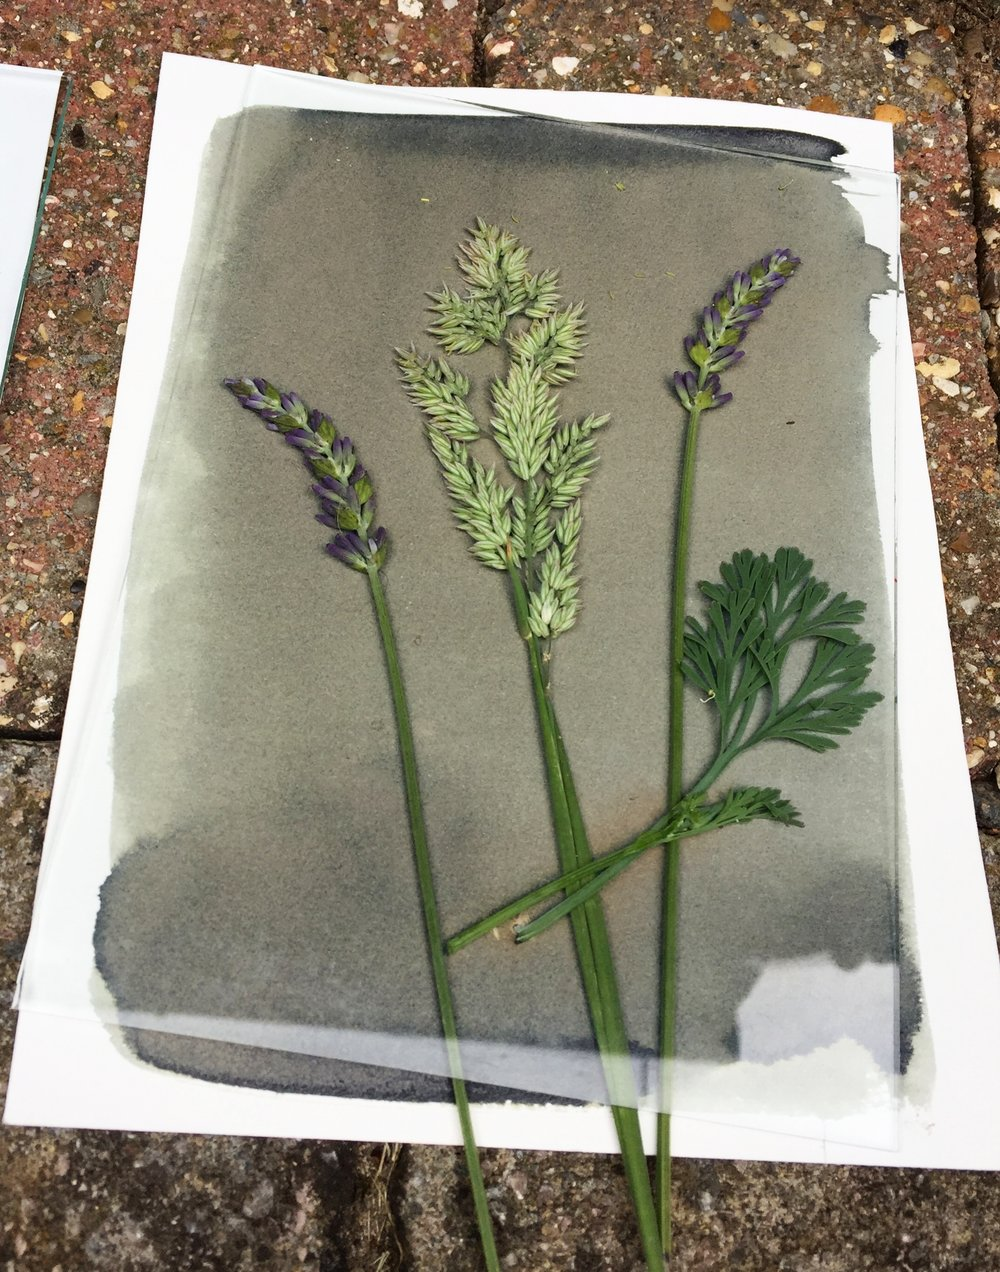 Expose to the sun